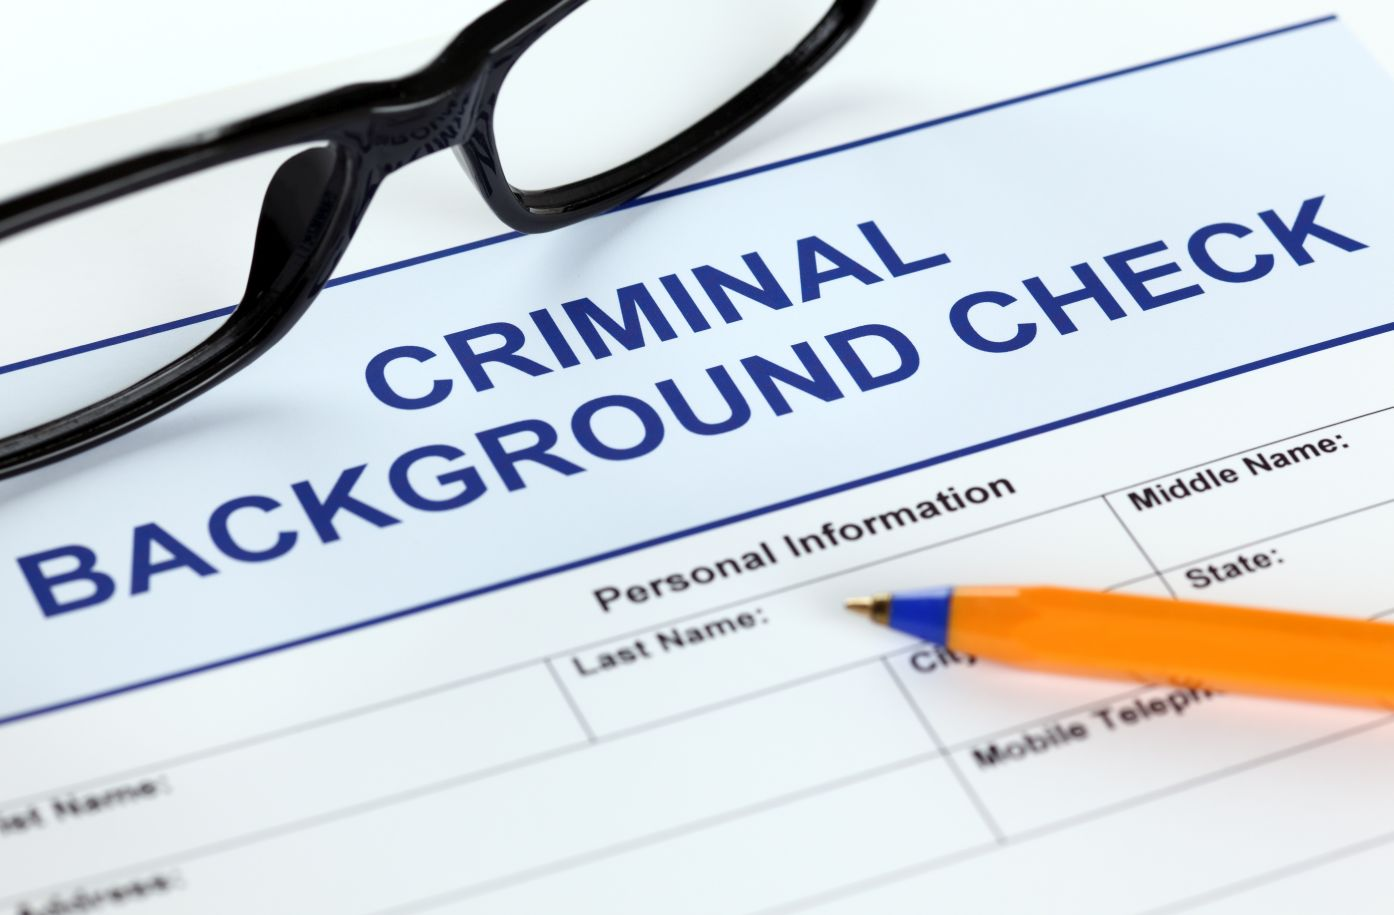 Criminal background check paperwork being filled out